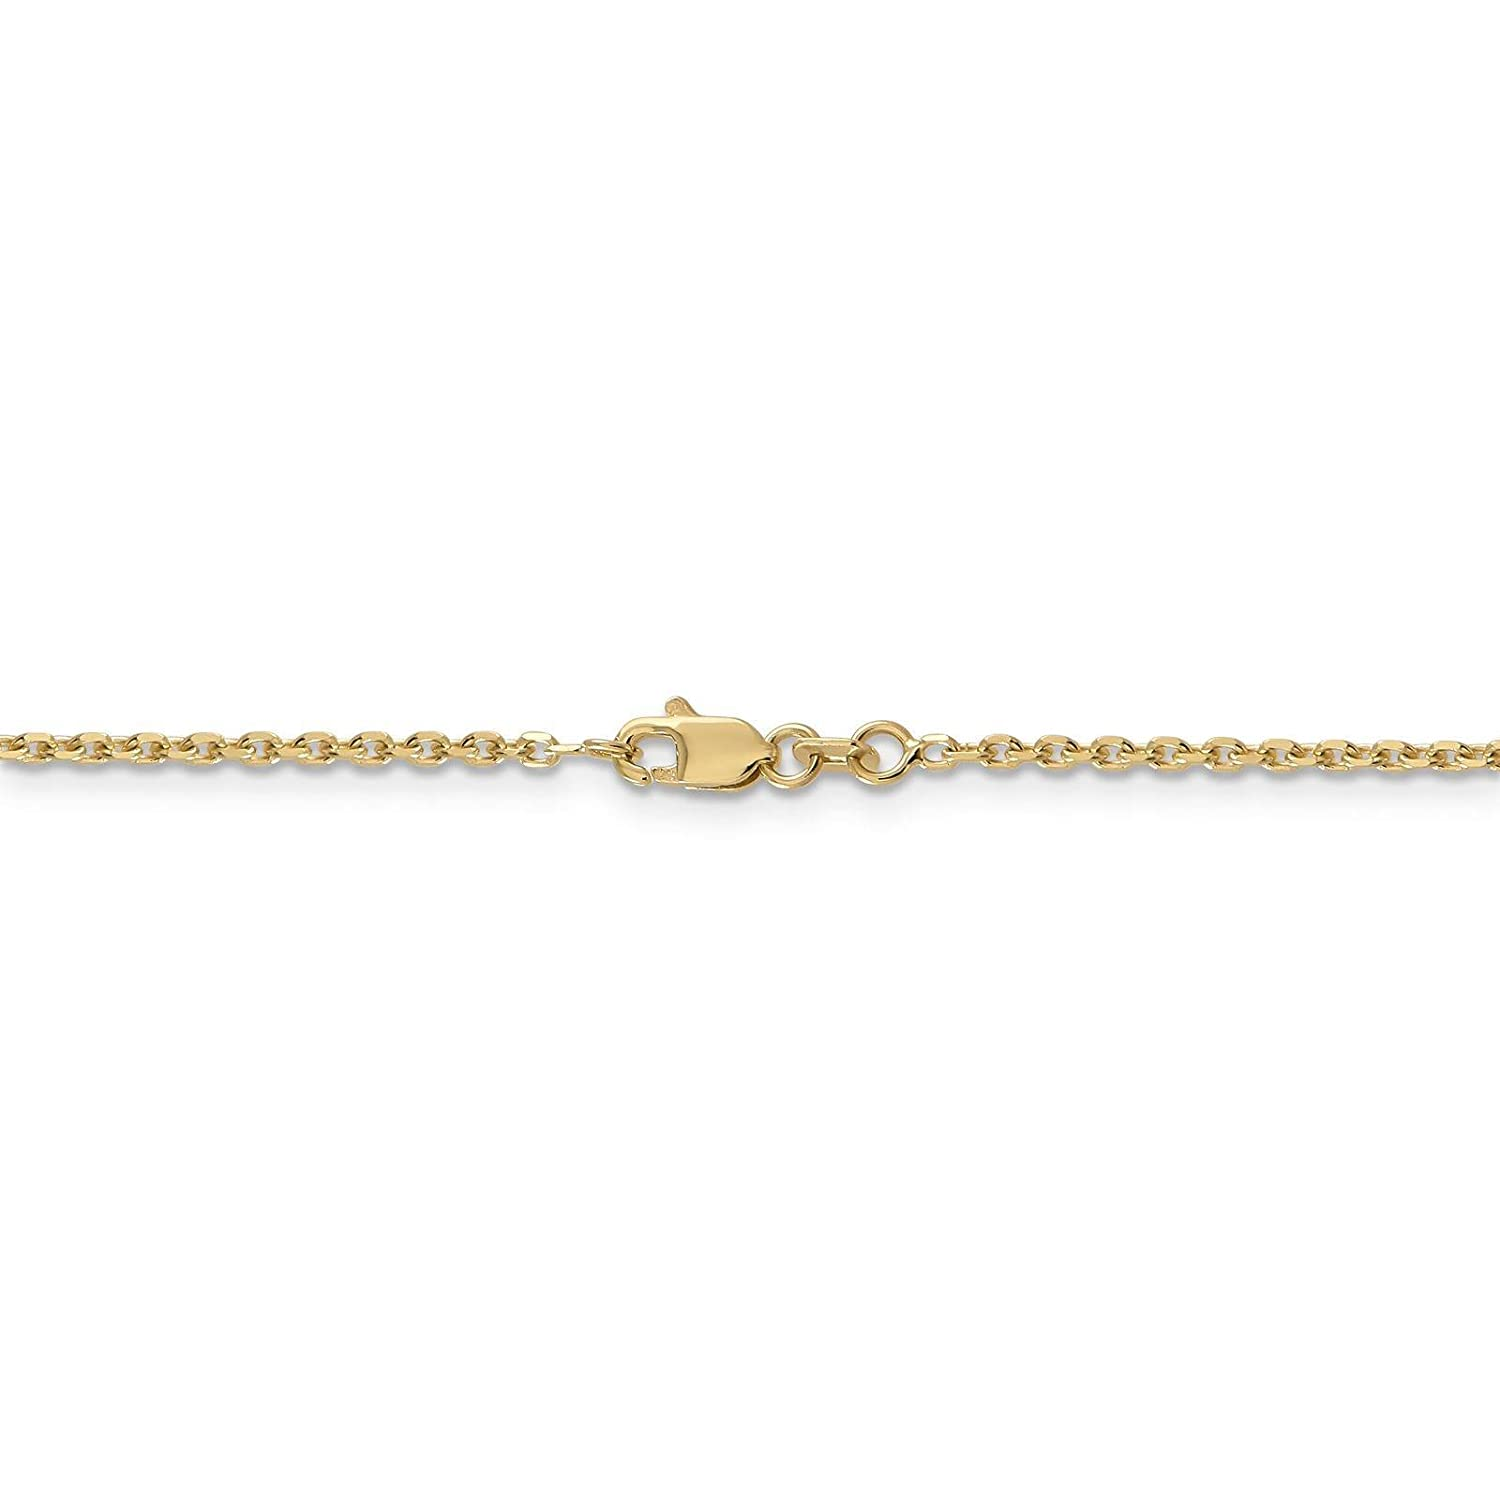 14k Yellow Gold 1.6mm Diamond-Cut Cable Link Chain Necklace Bracelet Anklet 9-30